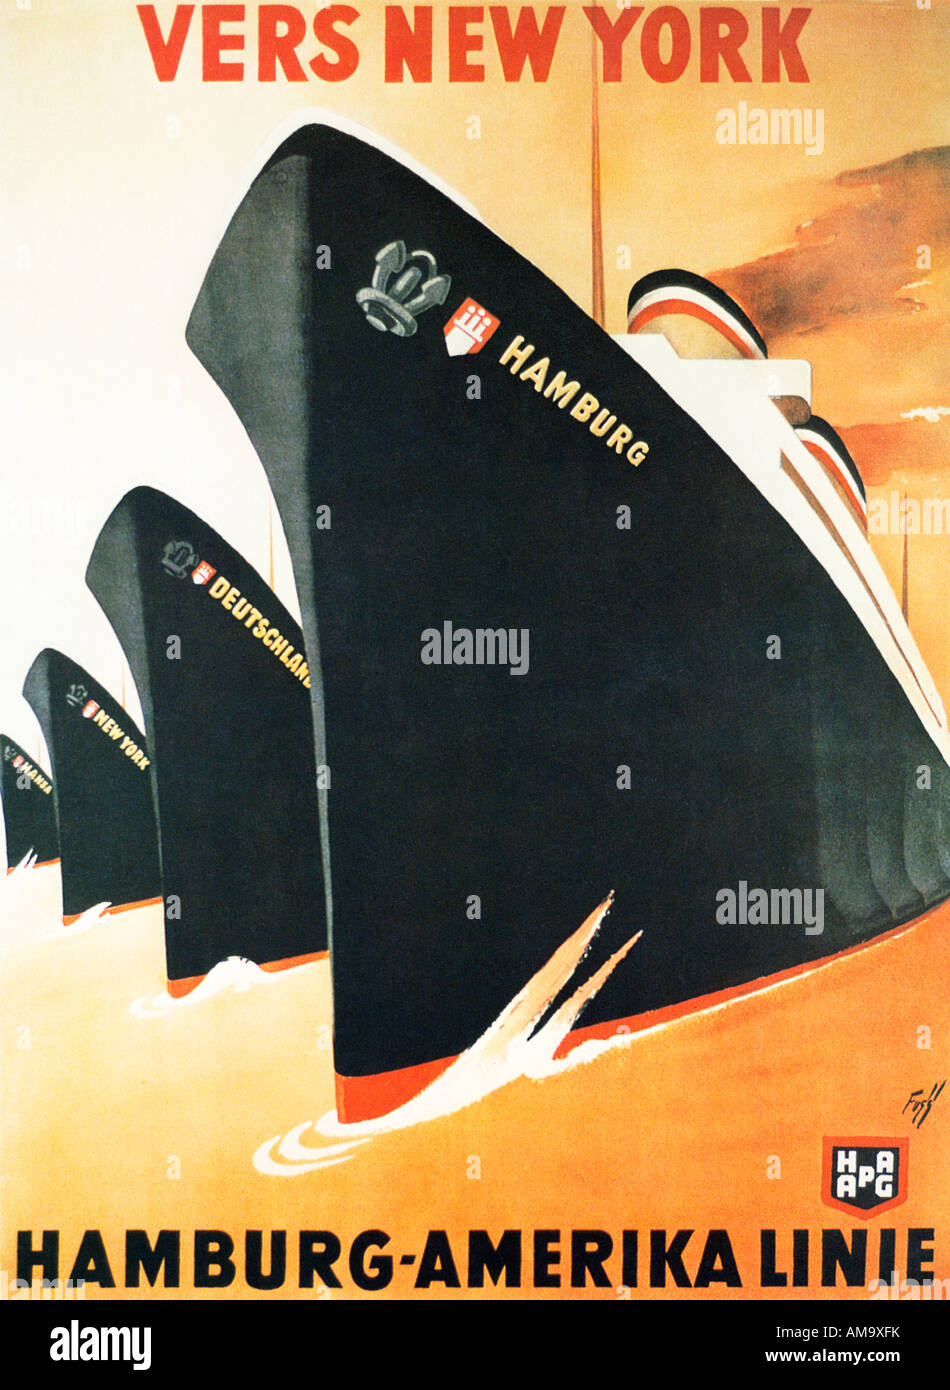 vers new york 1920s art deco poster for the trans atlantic. Black Bedroom Furniture Sets. Home Design Ideas